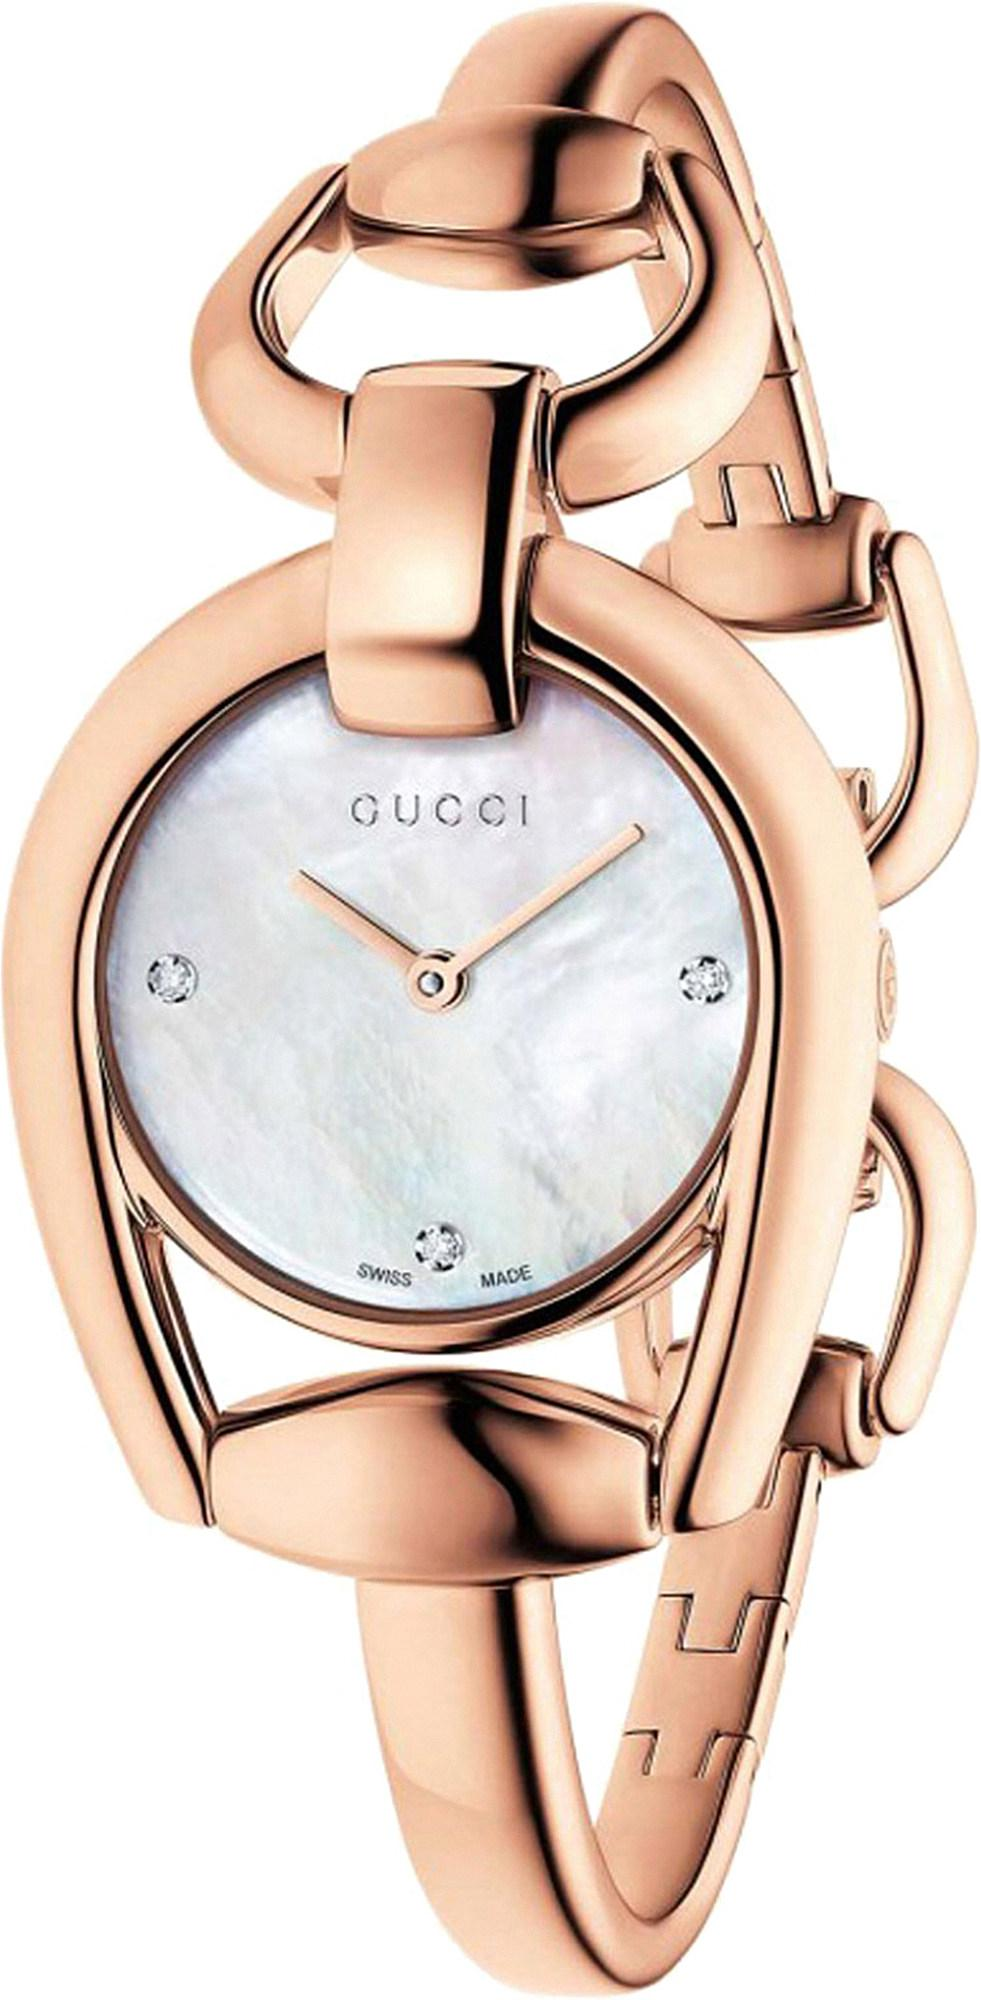 6e31386c5f4 Gucci. Women s Pink Ya139508 Horsebit Rose-gold And Mother-of-pearl Watch